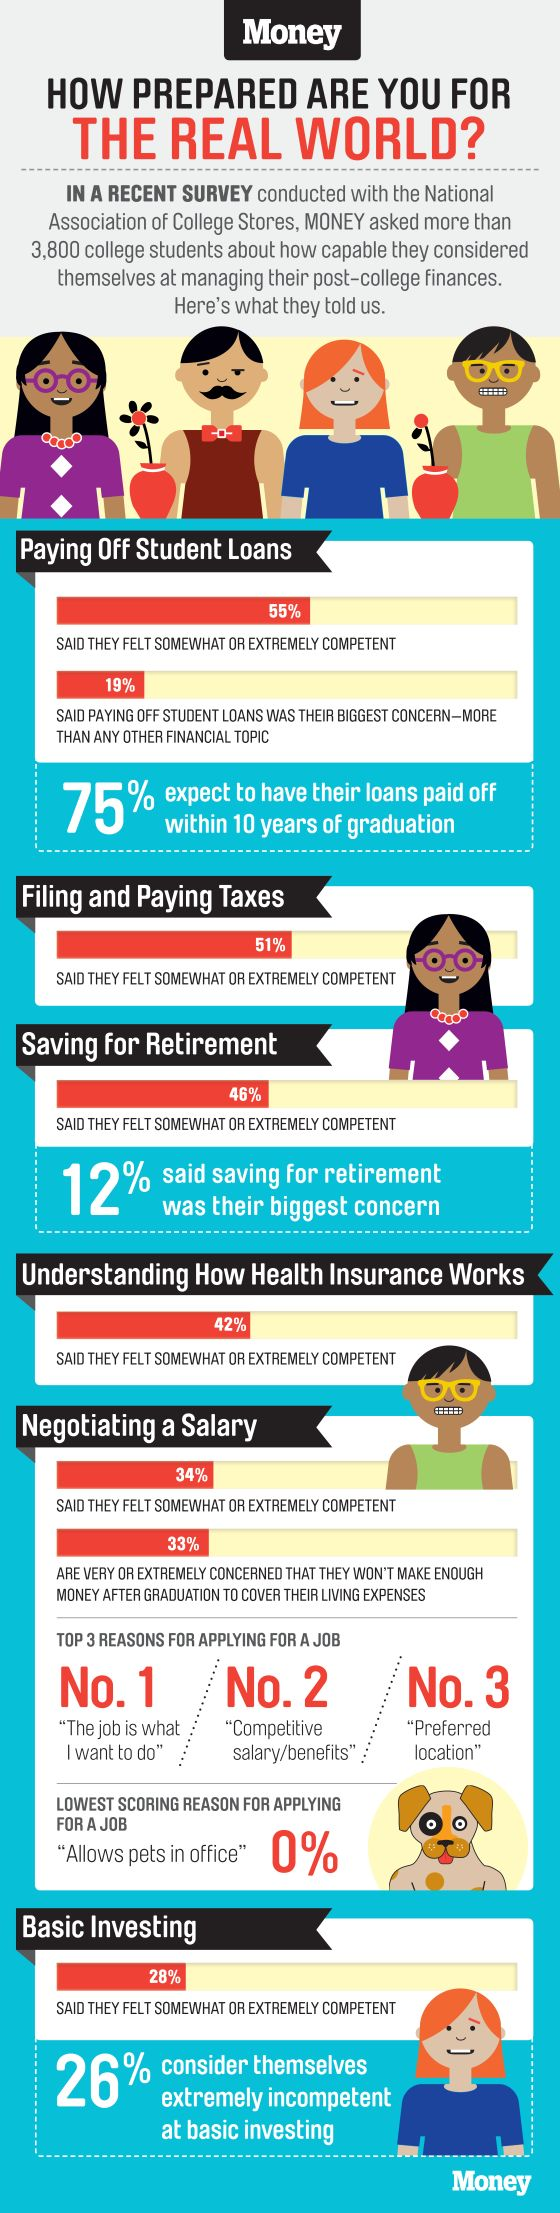 best investment for college students 171 best MONEY Graphics images on Pinterest | Retirement savings ...